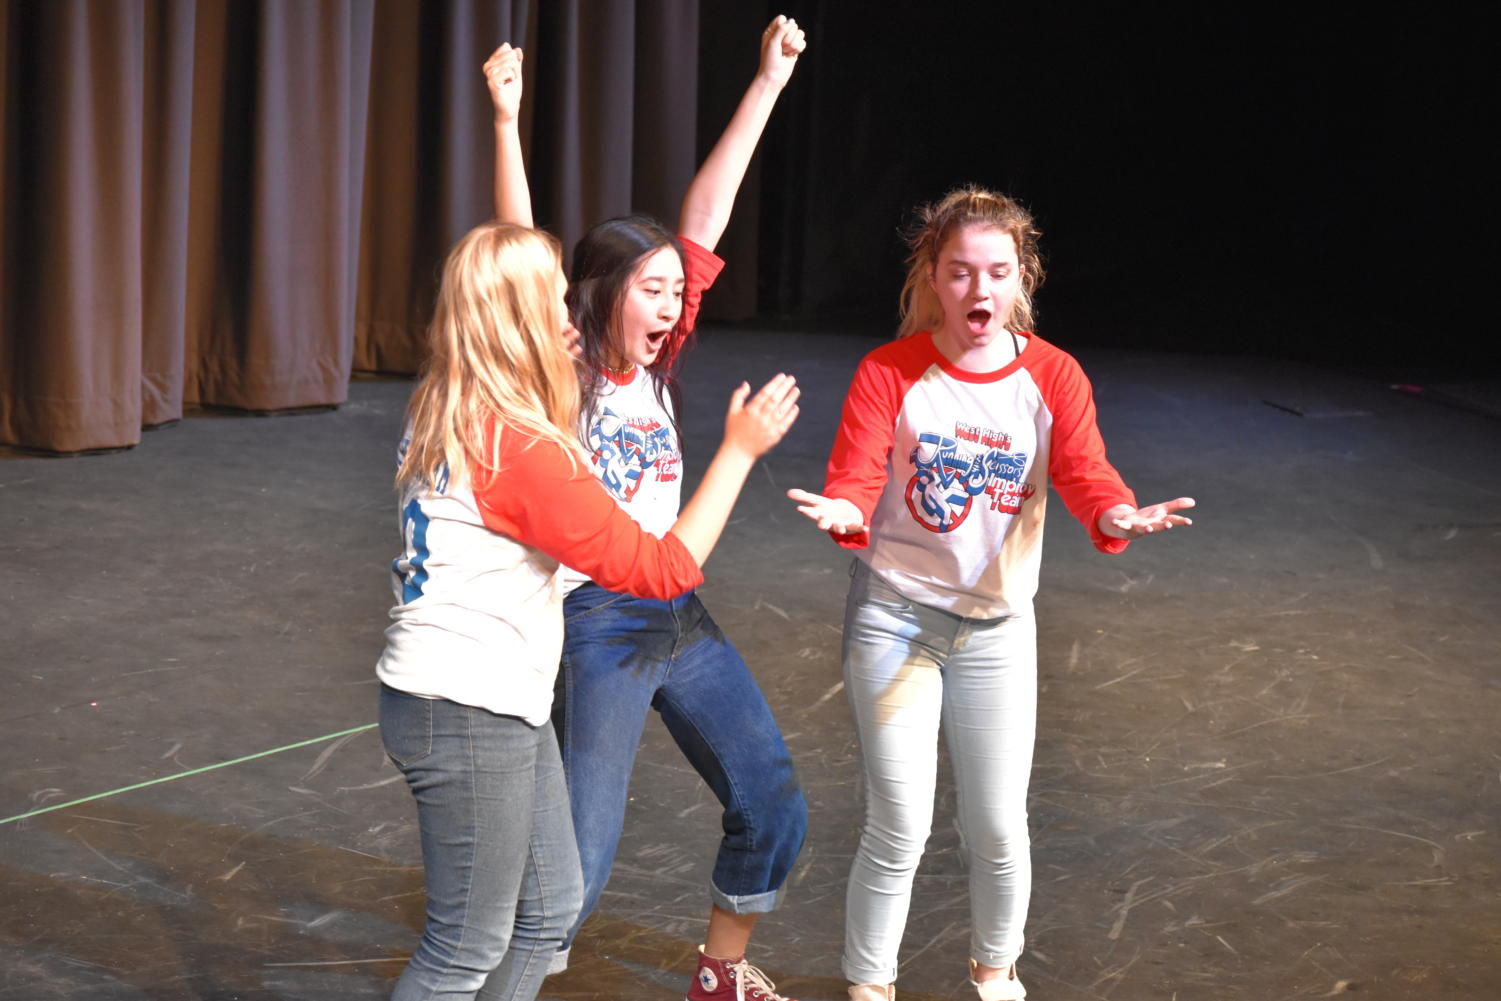 Paulina+Taranda%2C+Maddie+Cooke+and+Sophie+Marx+do+an+improv+skit+about+veganism+and+explosions.+%22It%27s+hard+because+sometimes+you+don%27t+know+what+you%27re+talking+about%2C%22+Cooke+said.+%22I+had+to+use+my+body+and+elements+of+the+scene+to+piece+together+the+prompt.%22